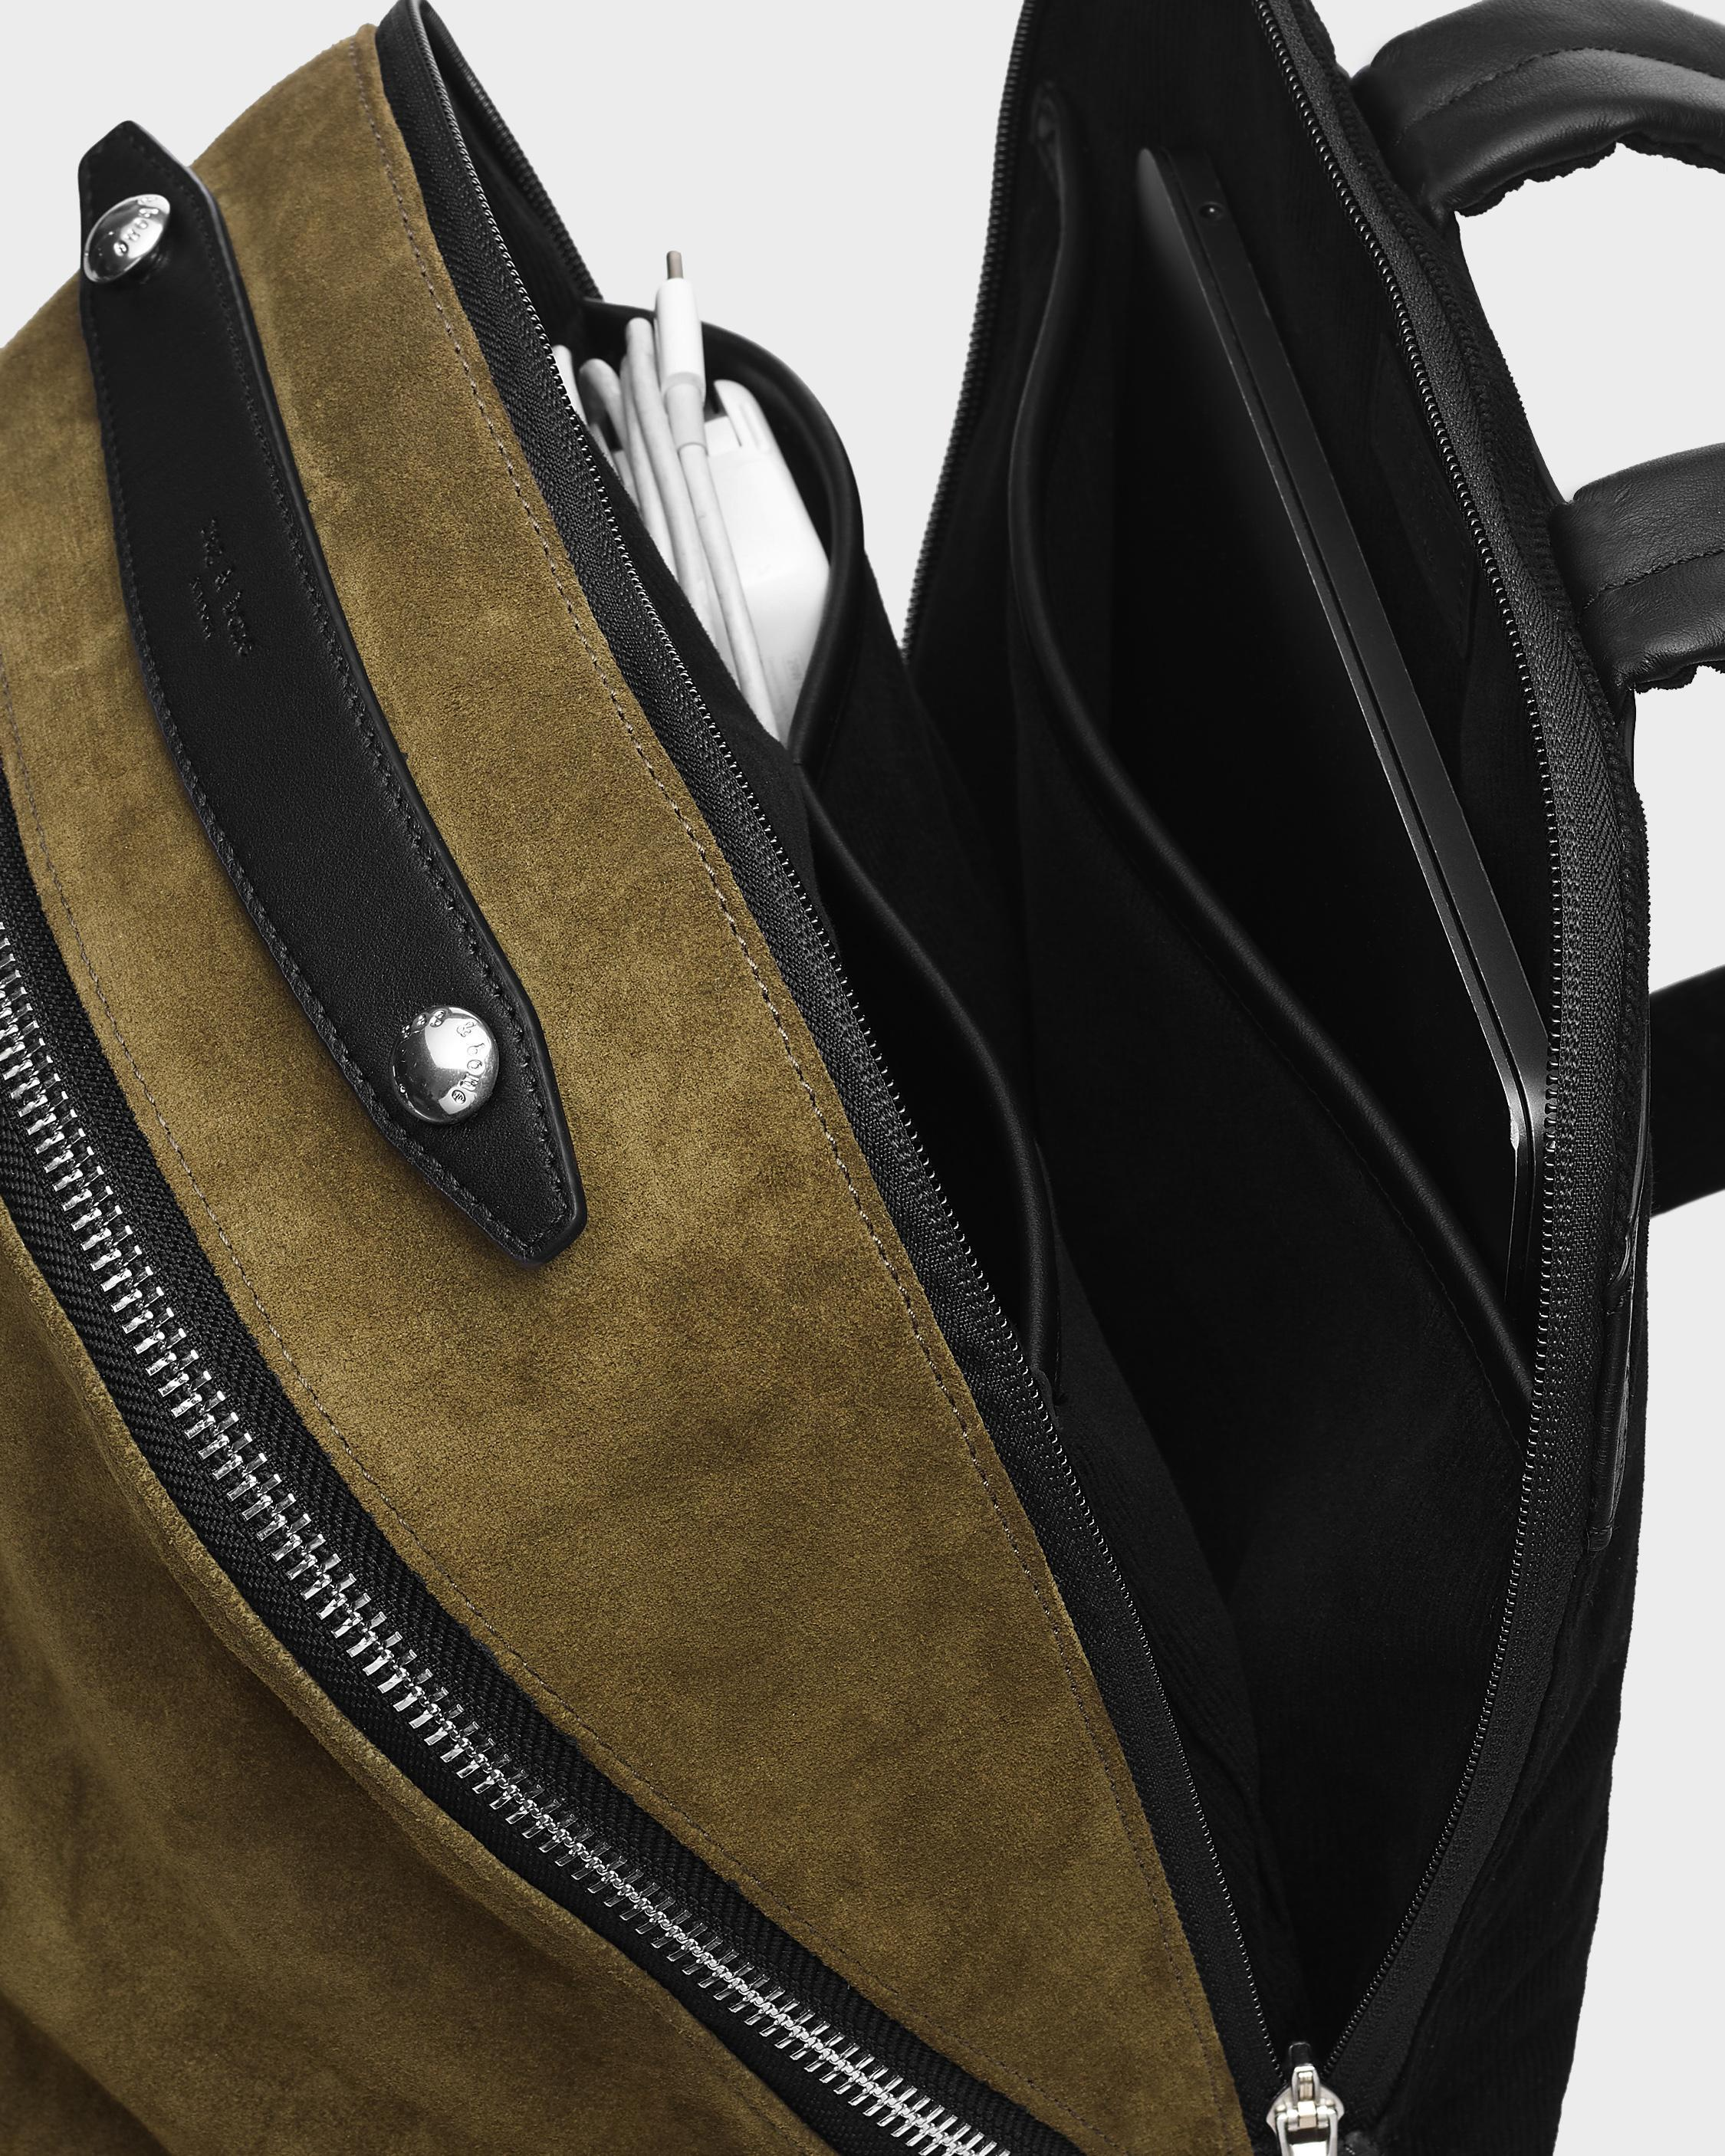 Commuter backpack - suede 2